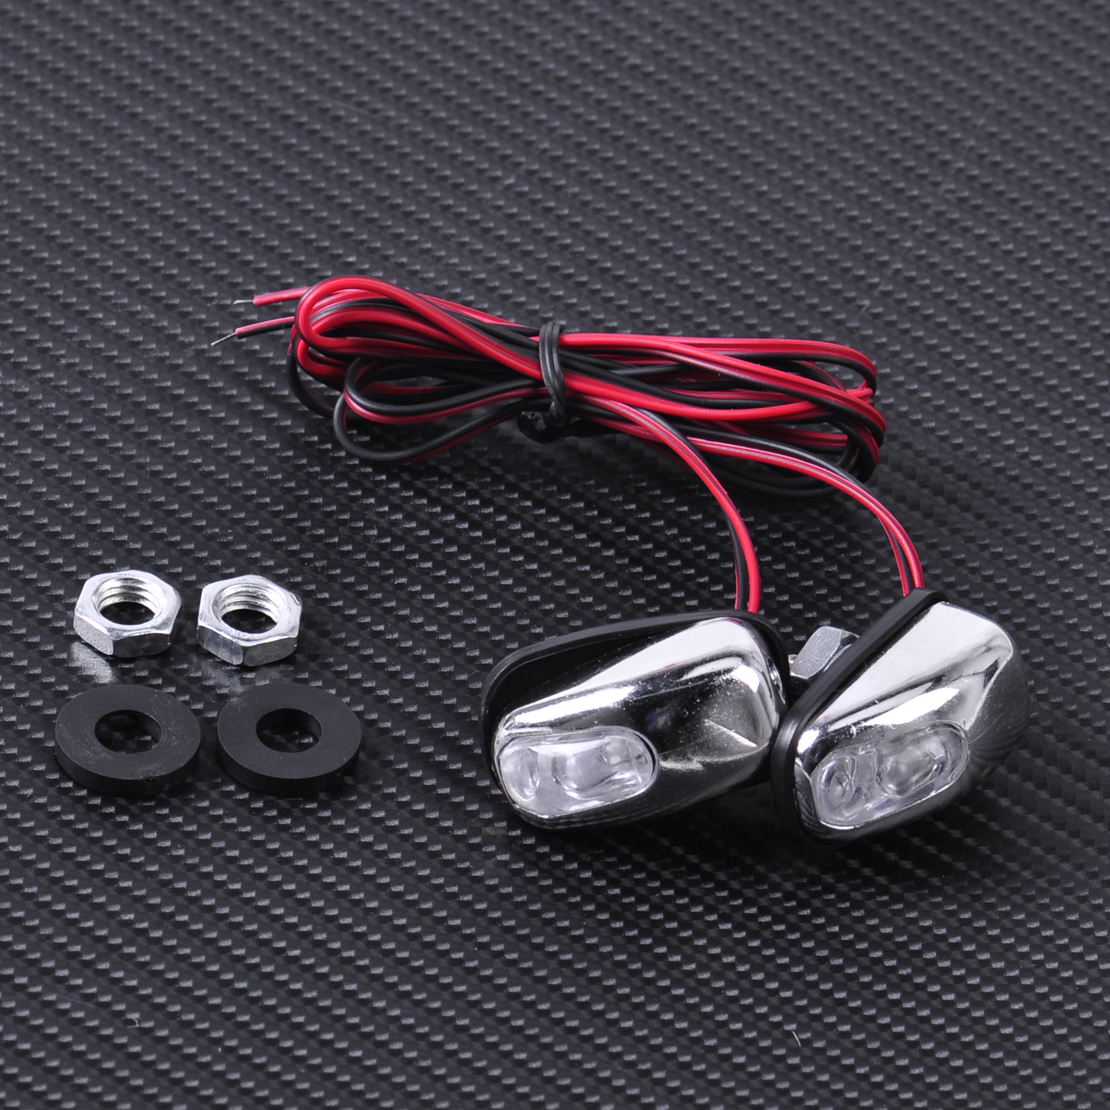 CITALL 2pcs LED Light Lamp Windshield Washer Wiper Jet Water Spray Nozzle Spout Wiper Washer Eye For Mercedes Audi Nissan VW Kia